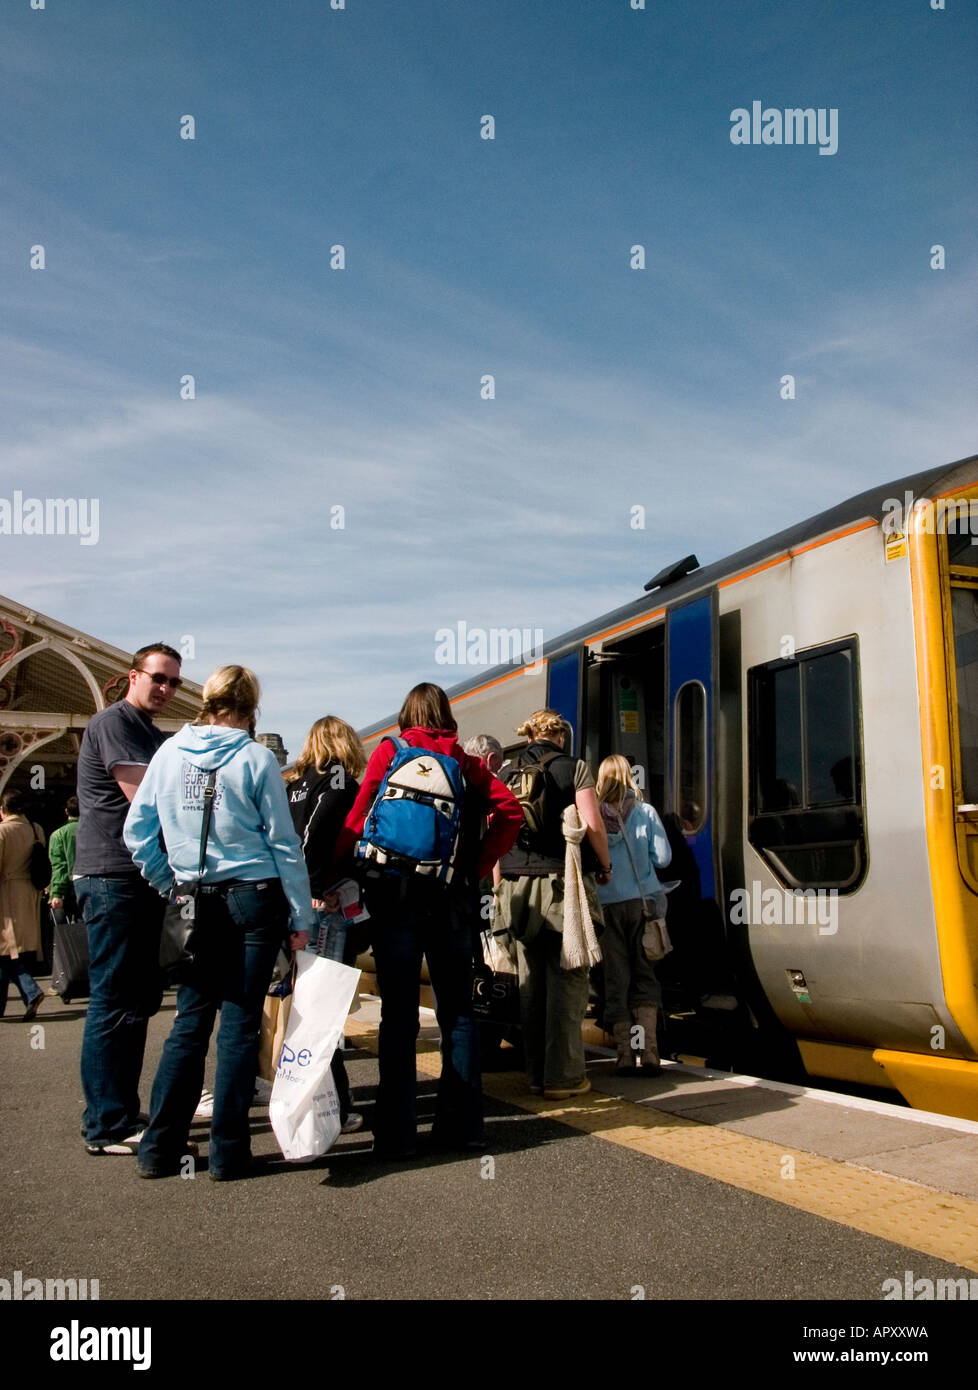 Passengers boarding a train at Aberystwyth railway station, wales UK - Stock Image